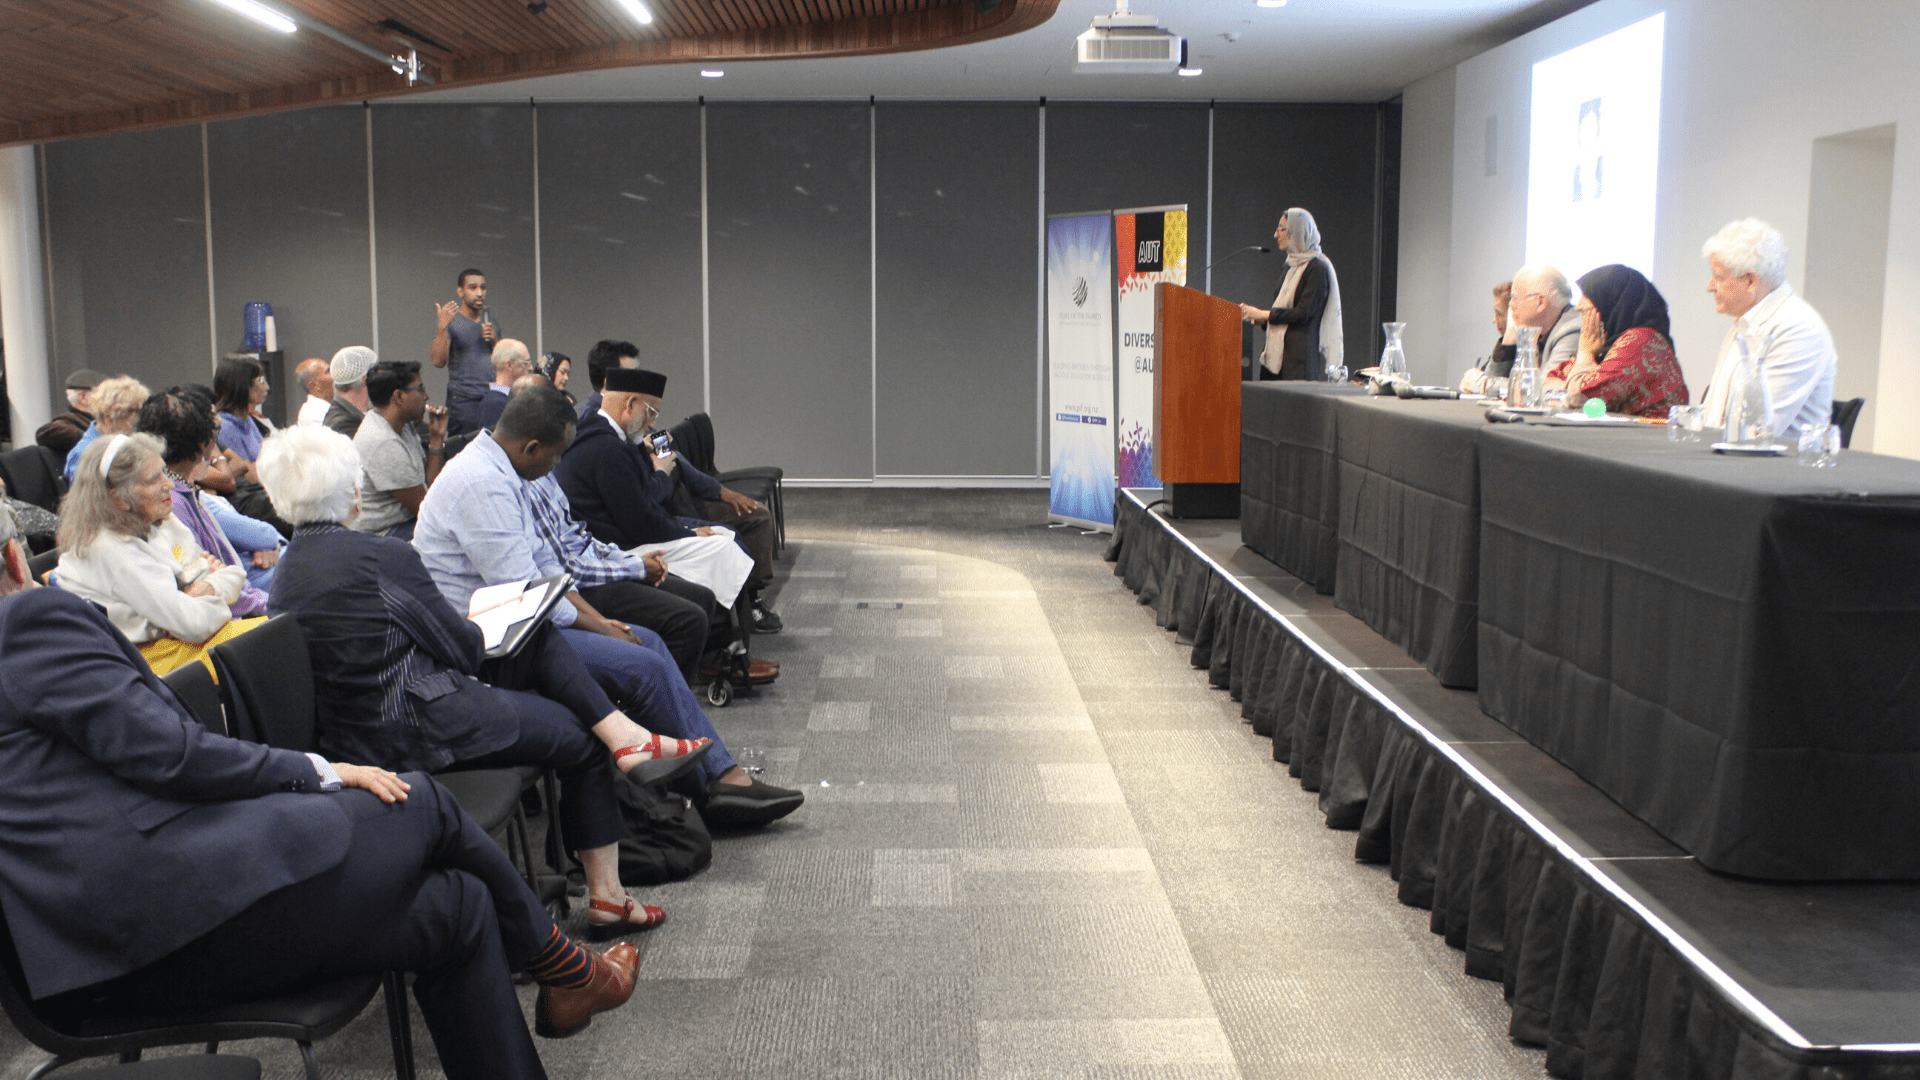 Post Christchurch: Hate speech, political discourse, and religious diversity. What lies ahead?